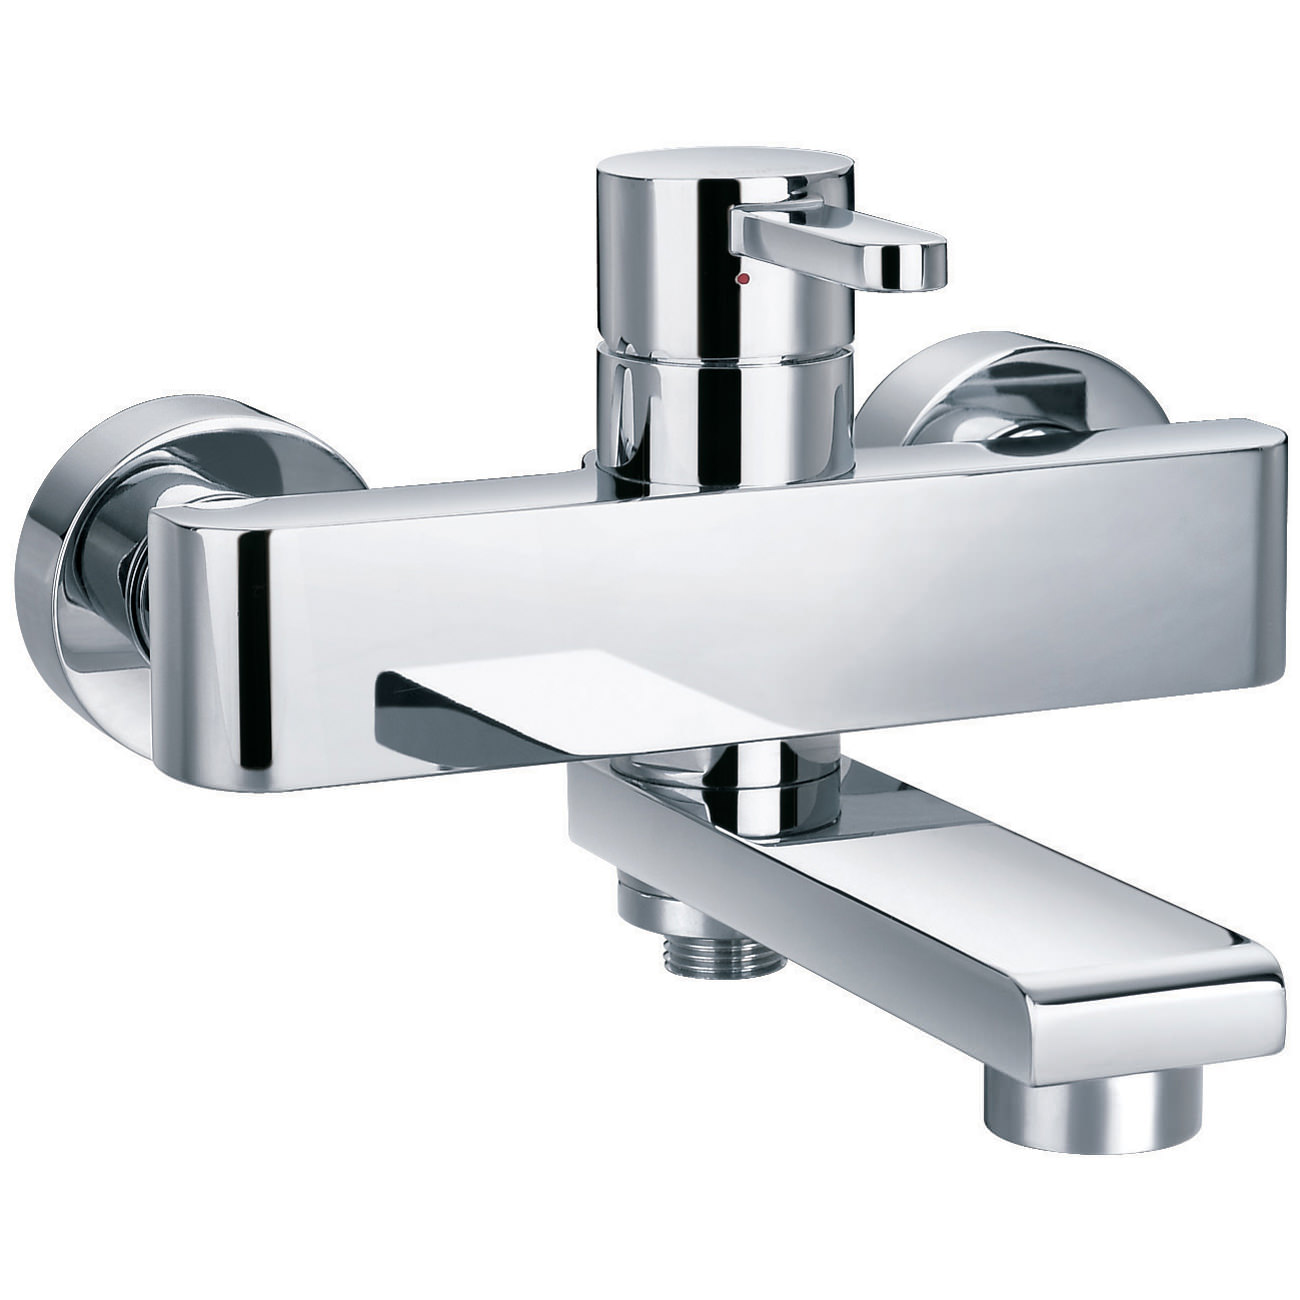 Flova essence wall mounted manual bath shower mixer tap for Bathroom taps